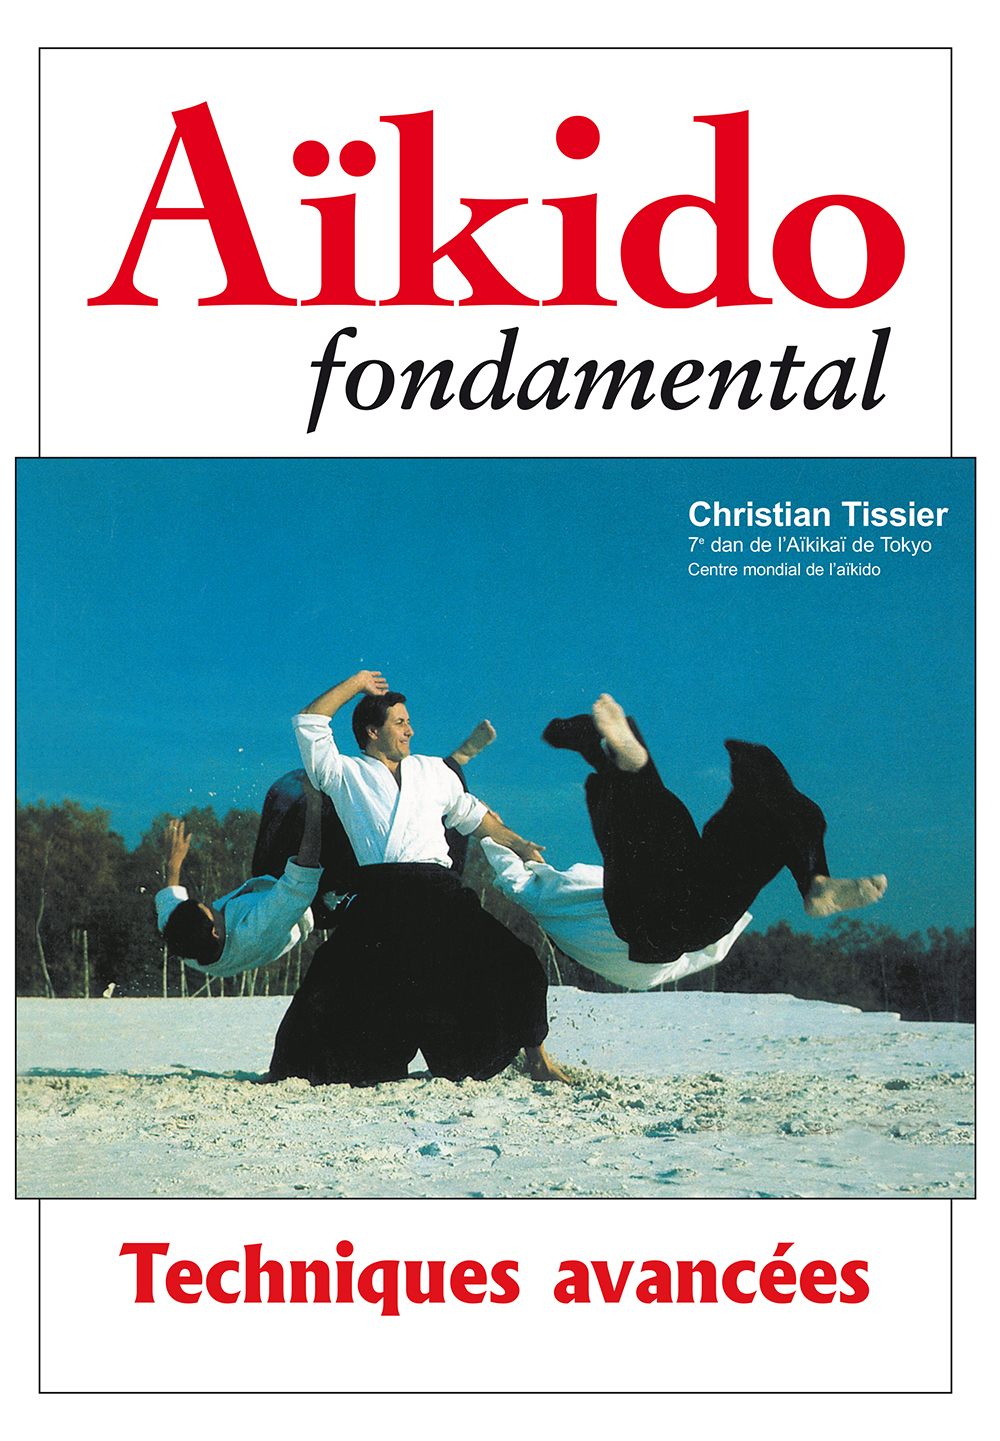 AIKIDO FONDAMENTAL